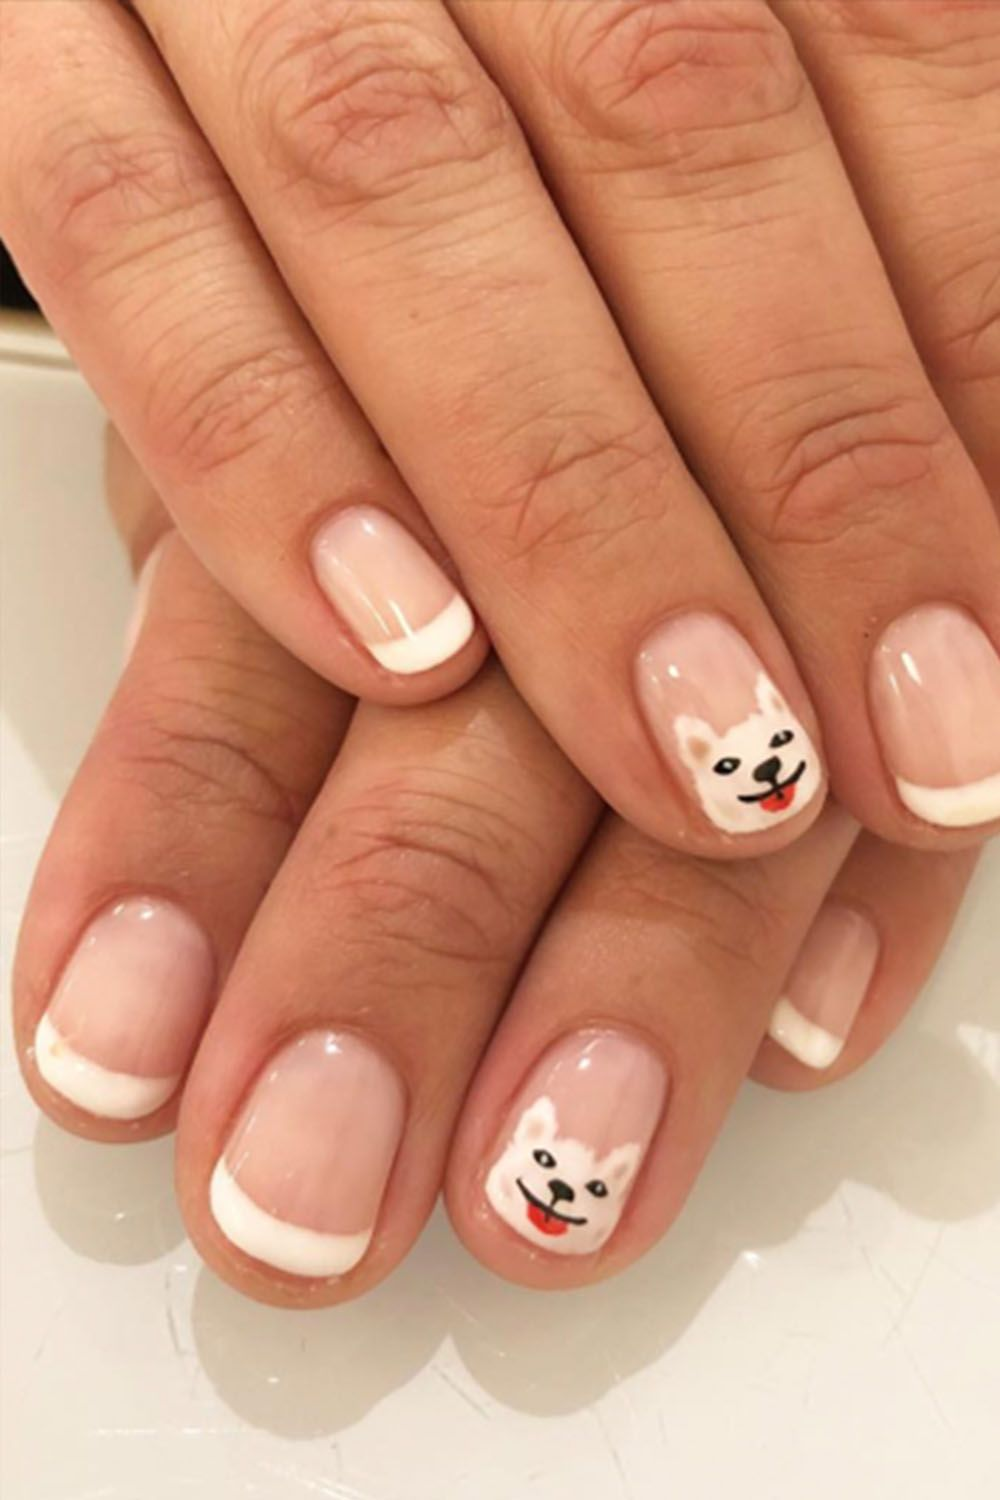 French Manicures Ideas - Nail Art Inspiration for Upgrading Classic ...